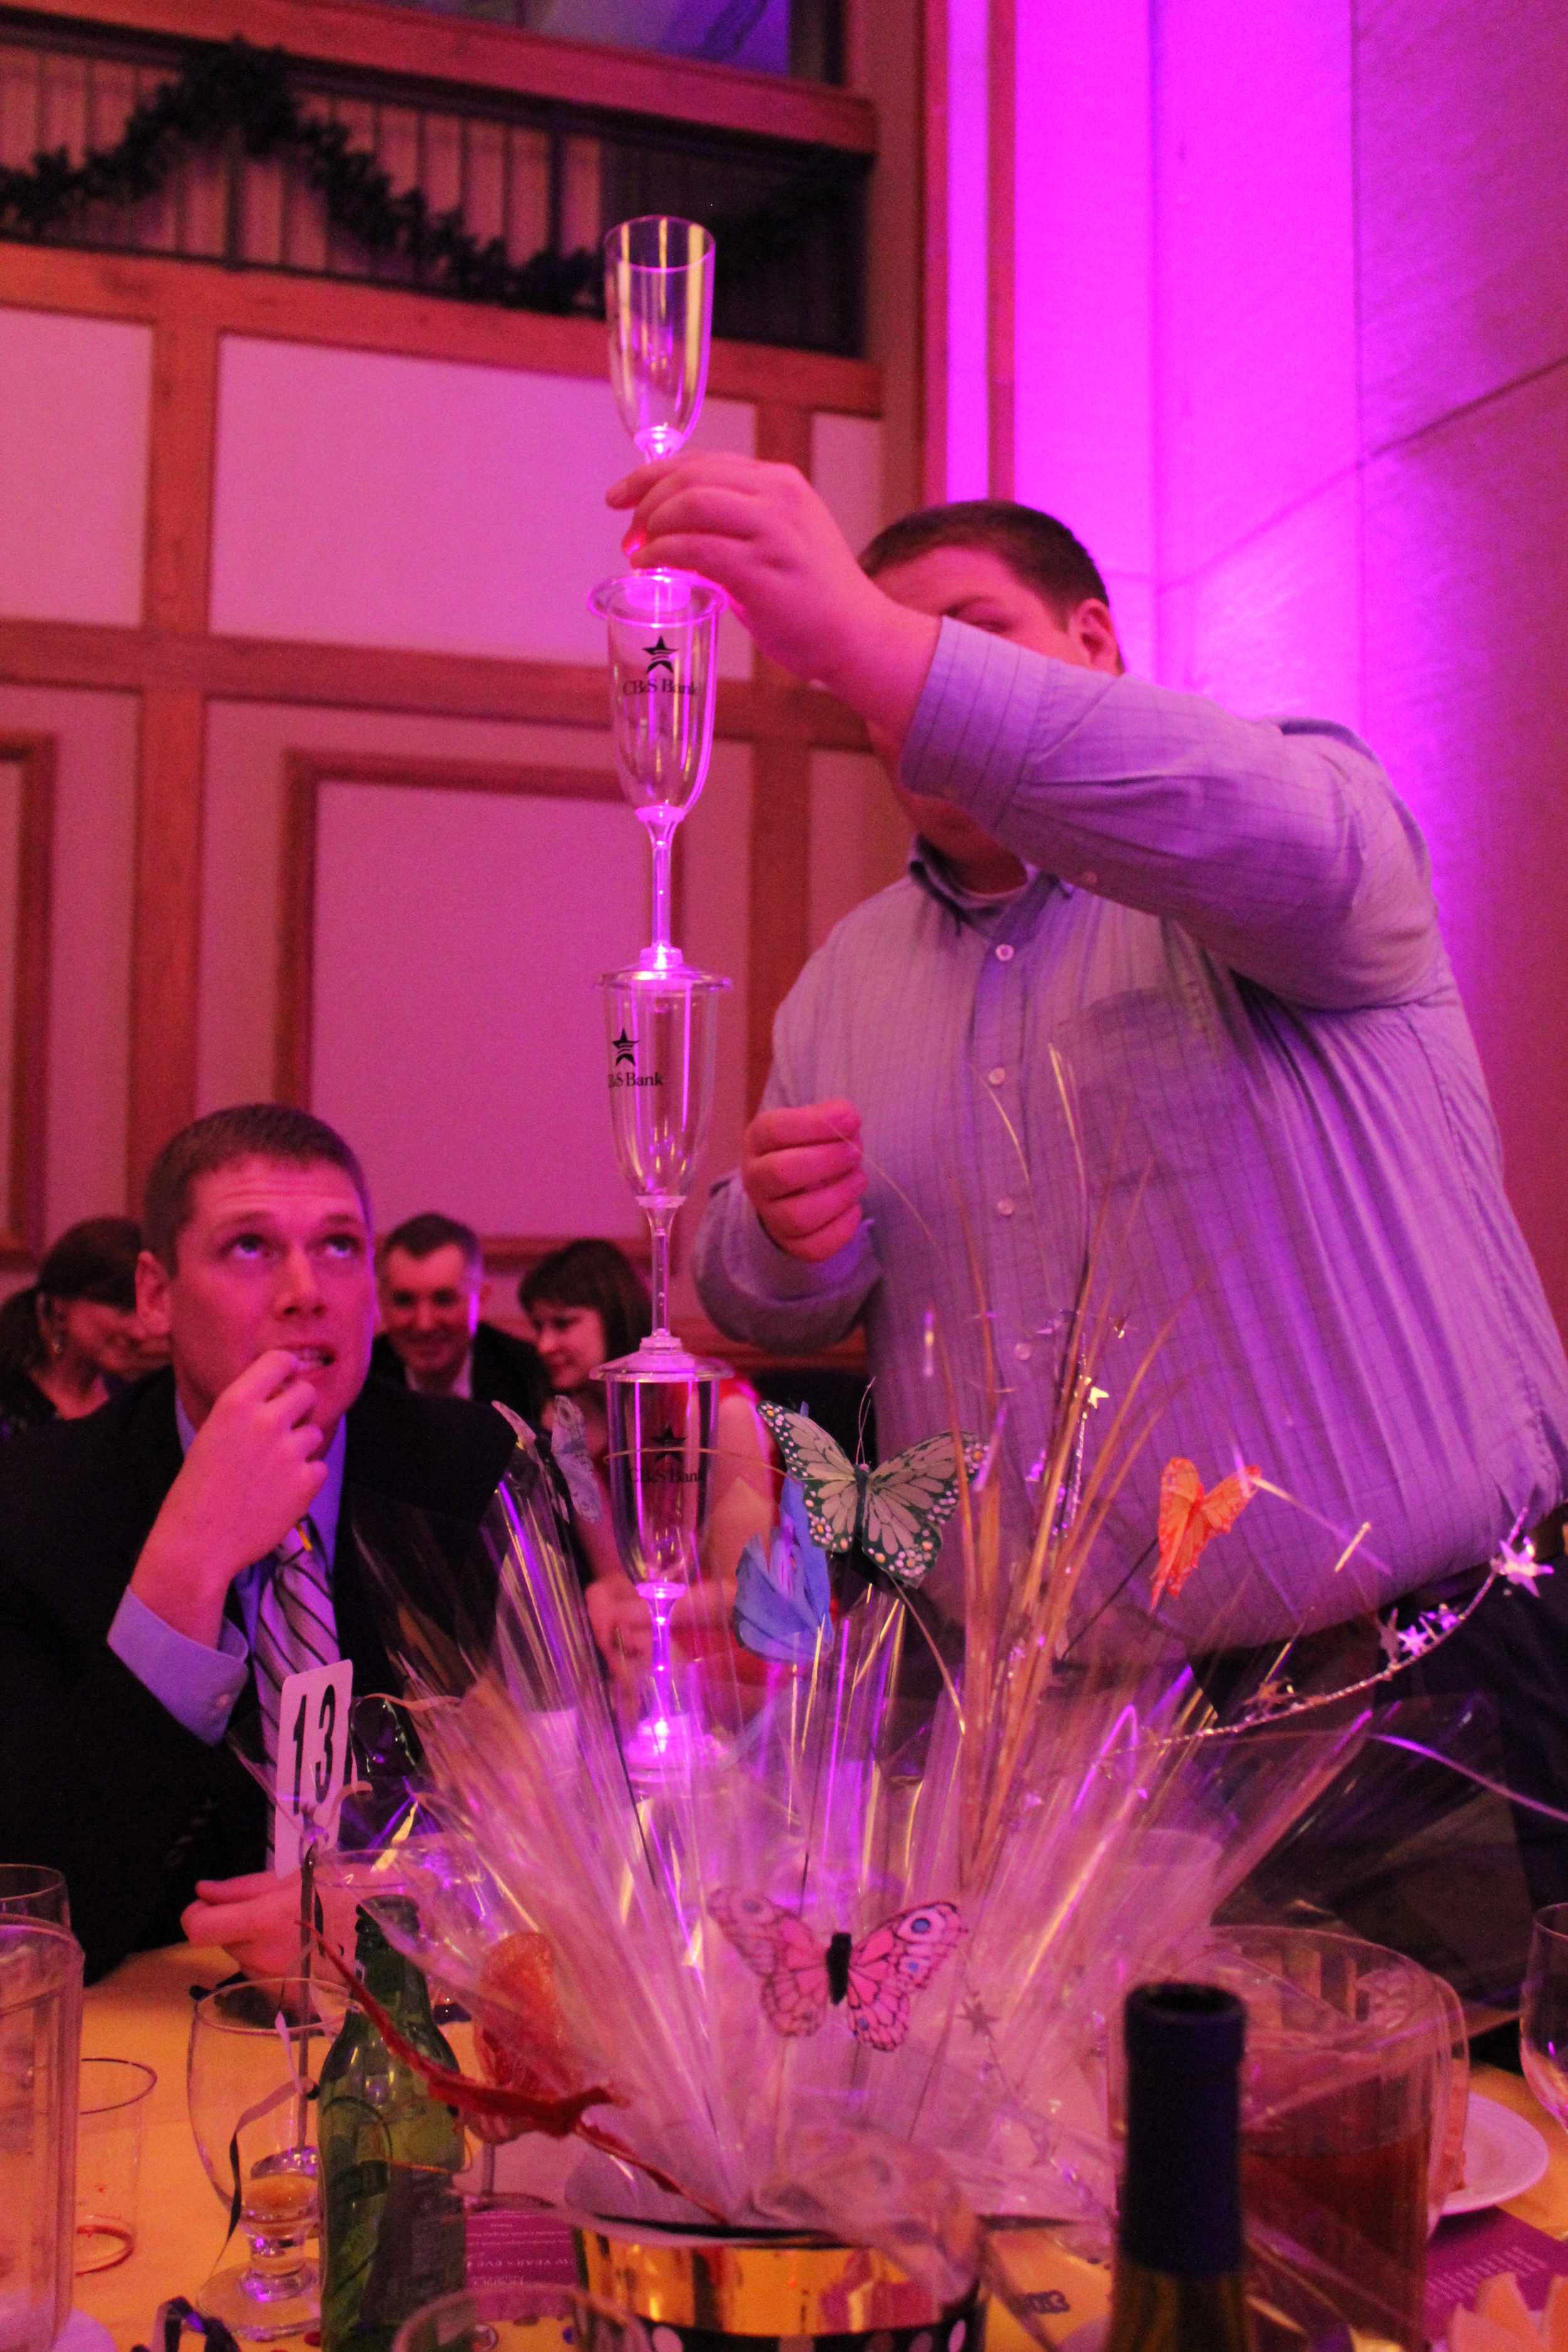 There was a competition with the other tables to see who could stack the most champagne flutes. The suspense was riveting.